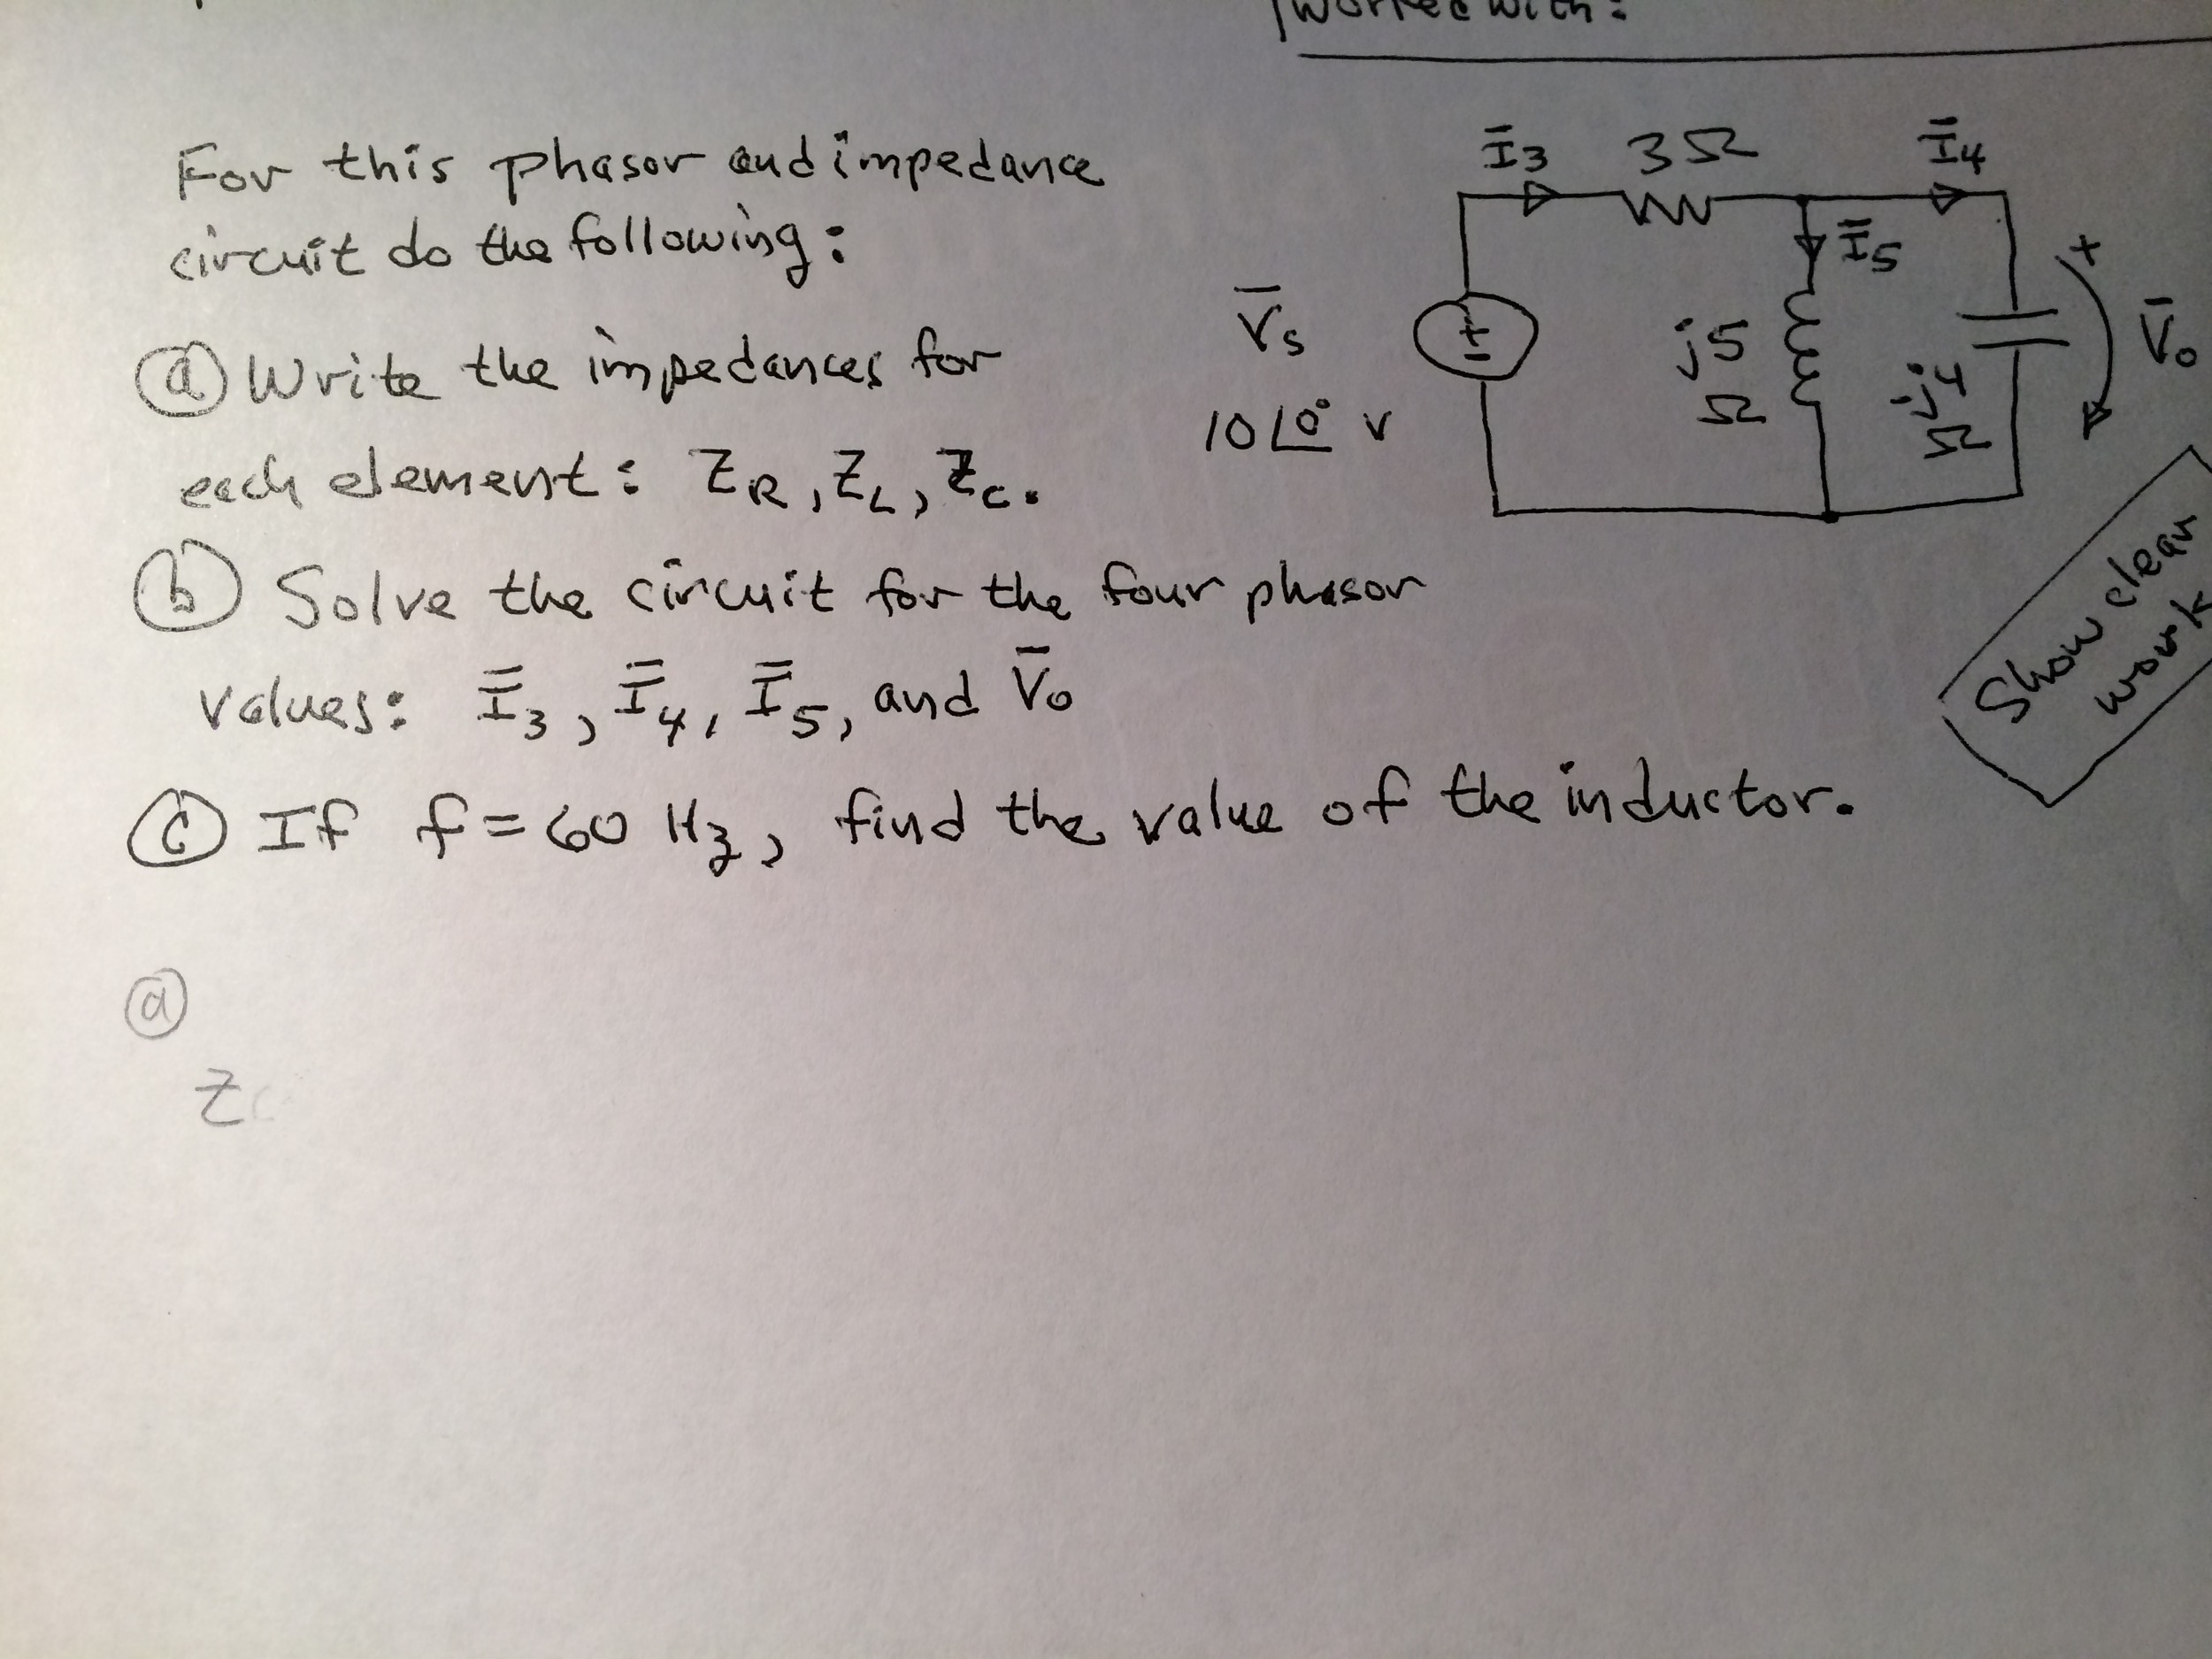 For this phasor and impedance circuit do the follo